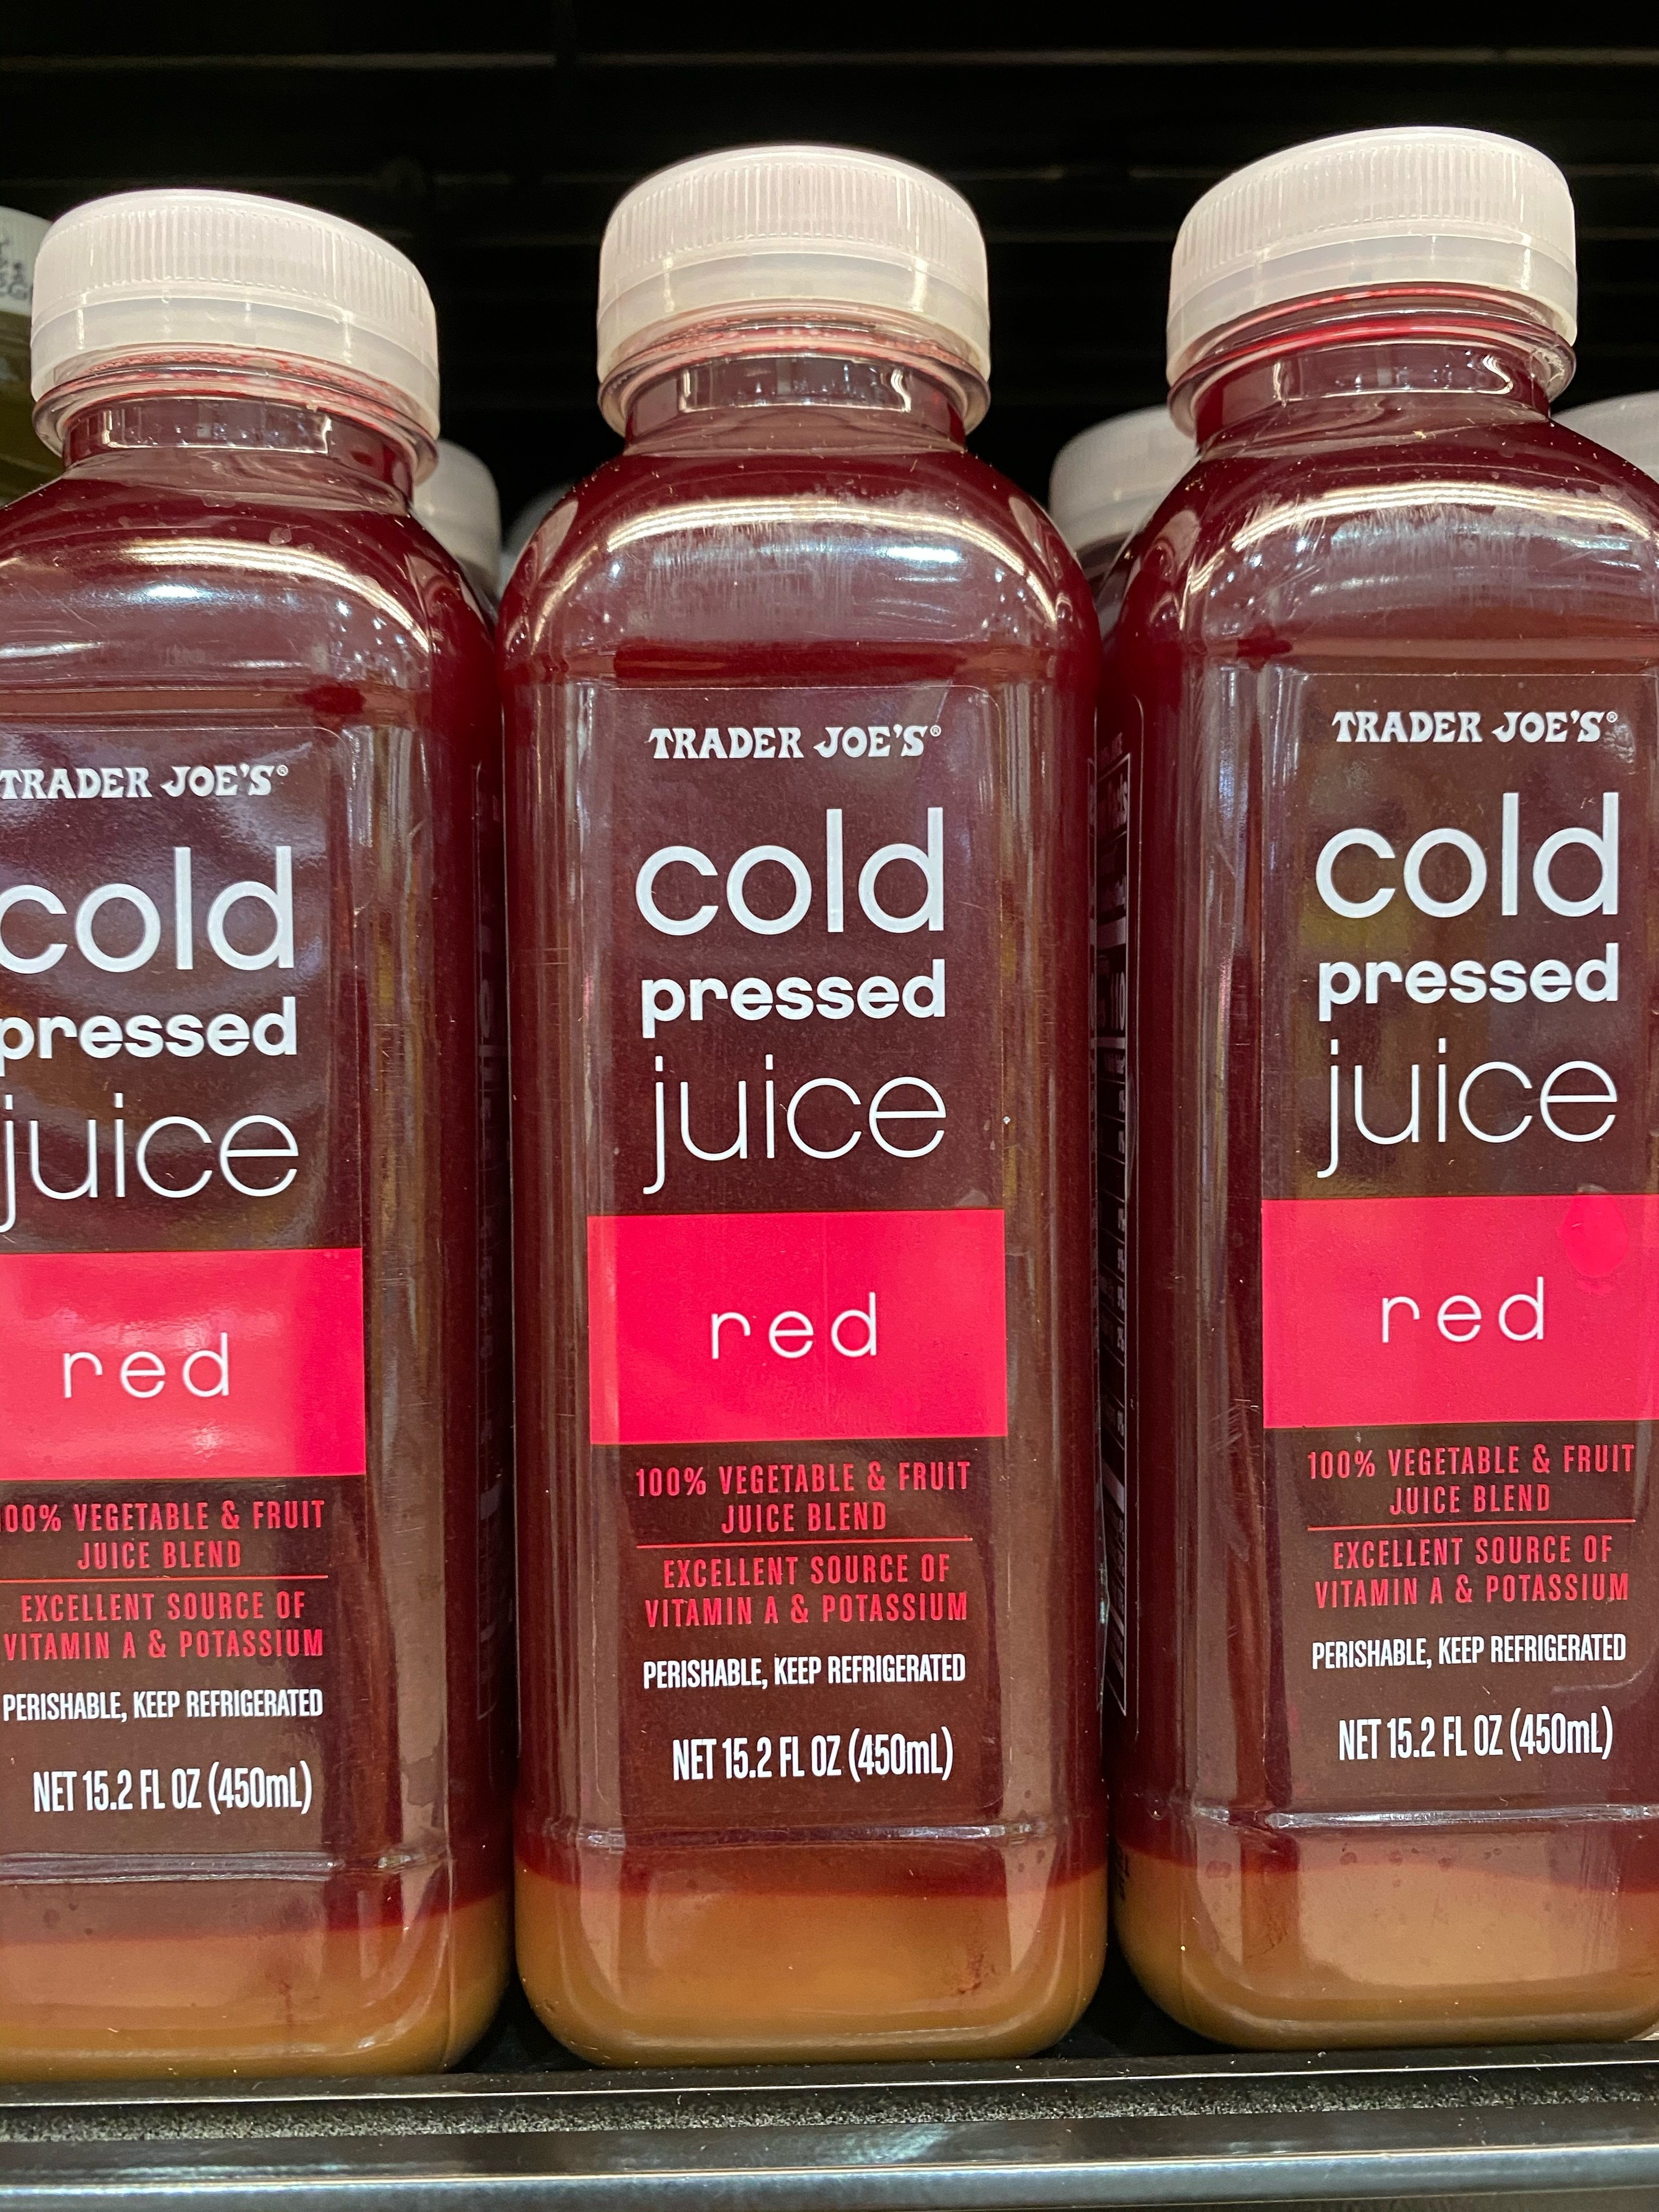 Cold pressed red juice from Trader Joe's.